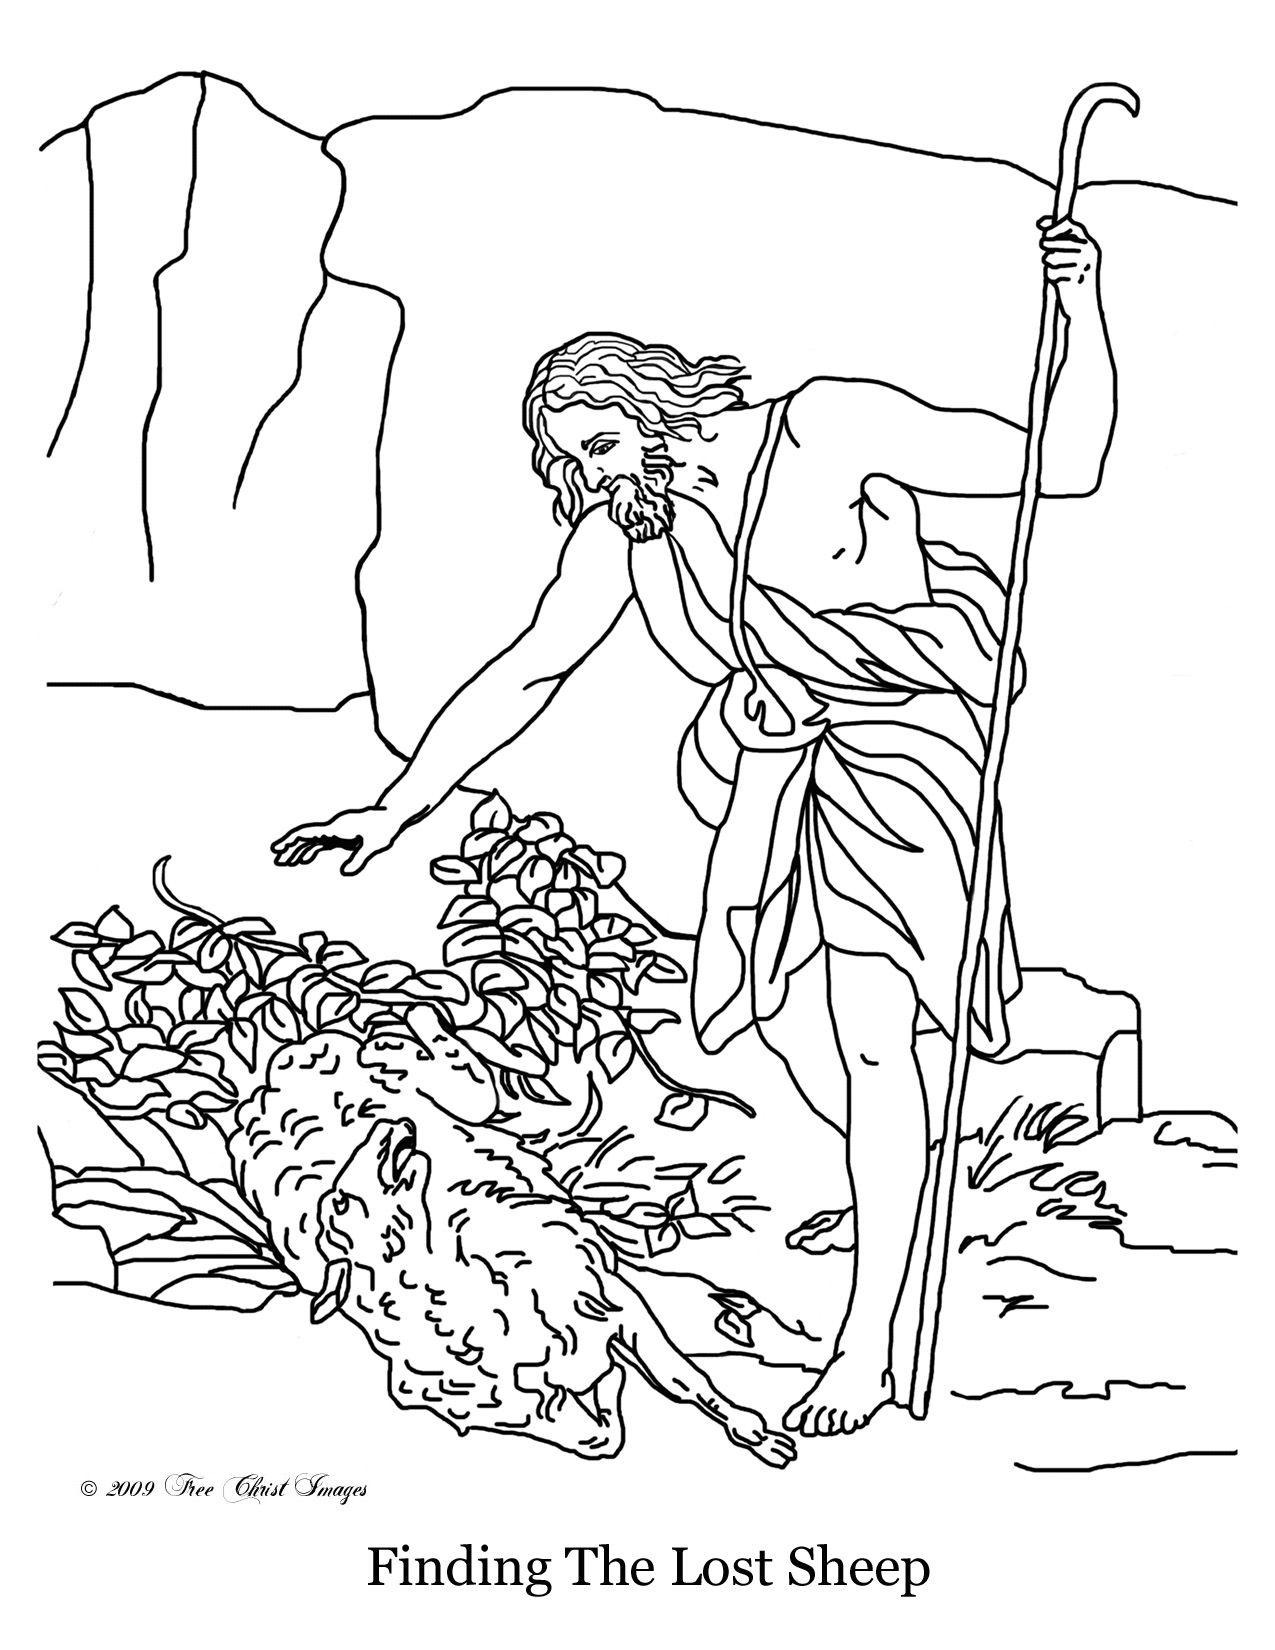 christ finding the lost sheep primary 7 18 church